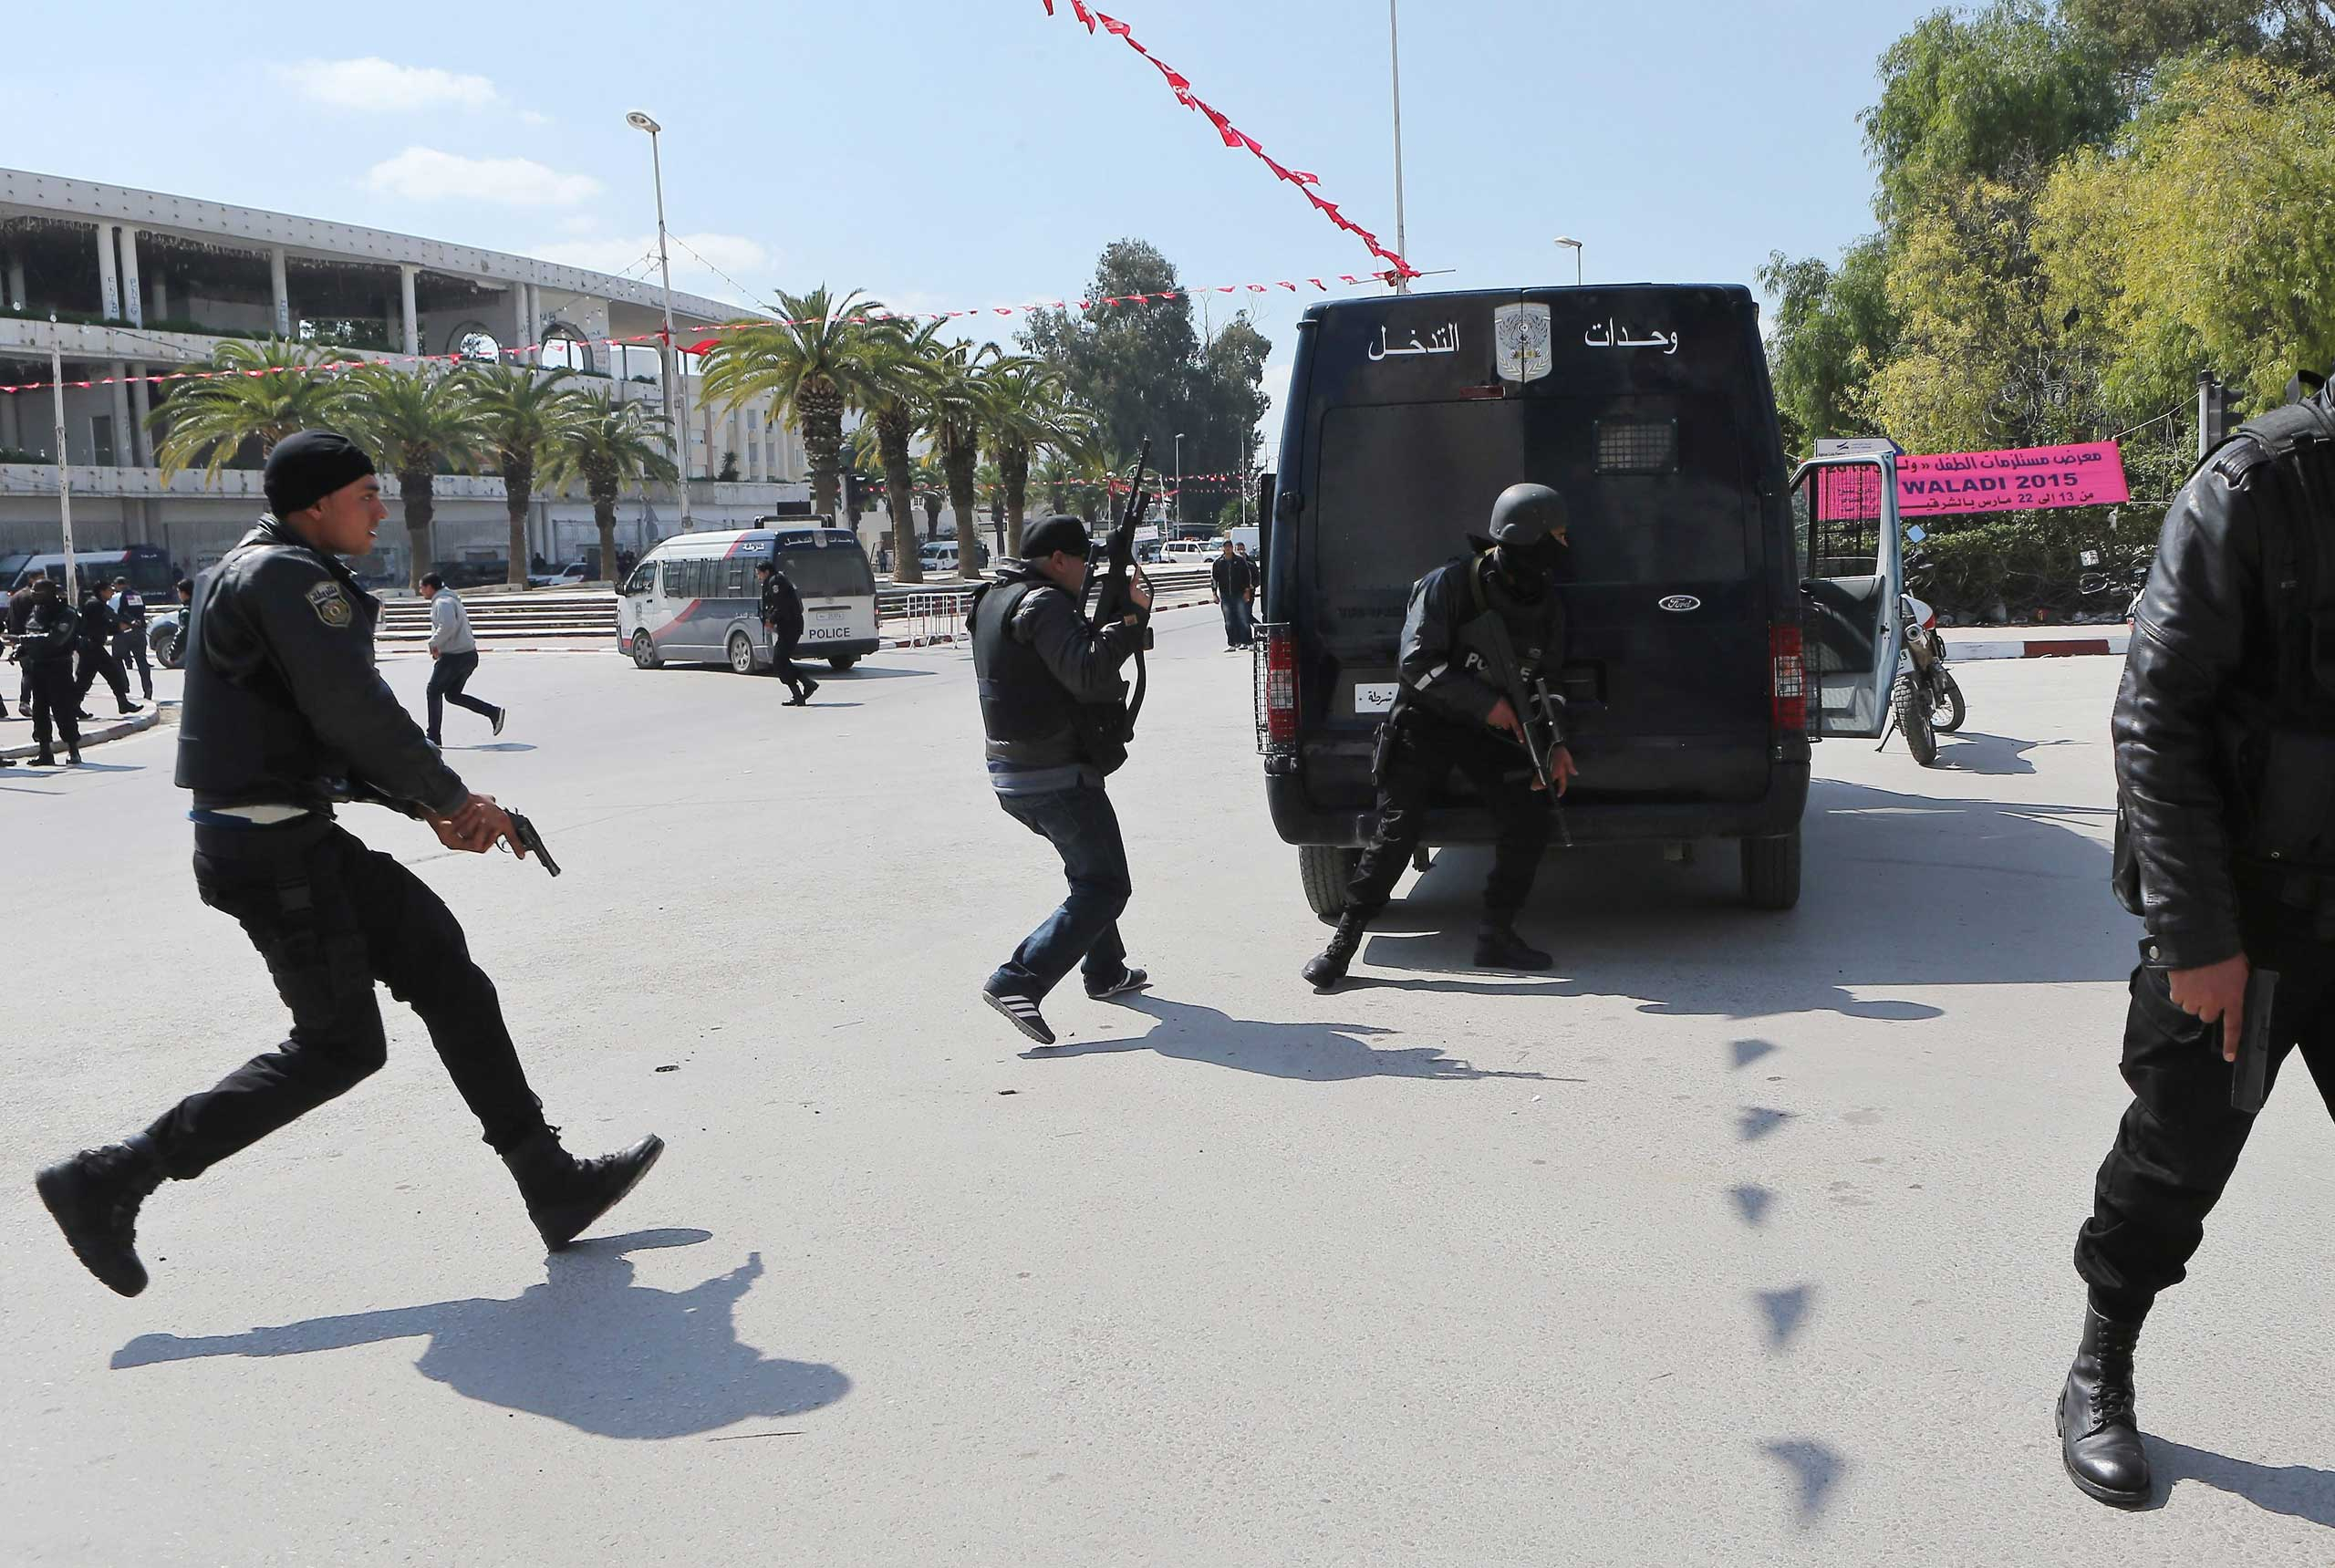 Members of the Tunisian security services take up a position after gunmen reportedly took hostages near the country's parliament, outside the Bardo Museum in Tunis, March 18, 2015.